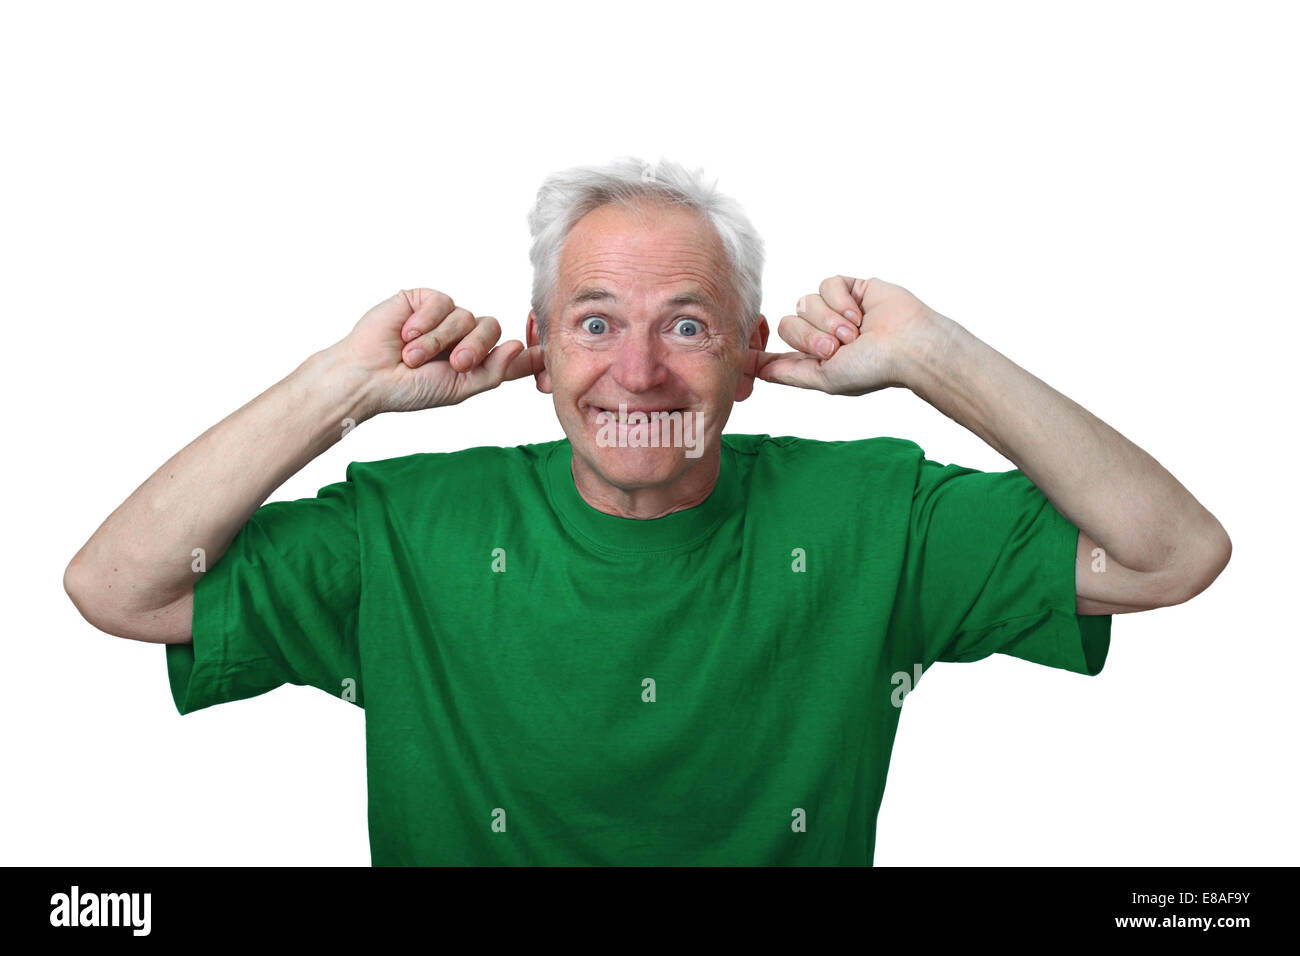 Senior man stuffed his ears with fingers and grins isolated on white background. Deaf and hears nothing - Stock Image